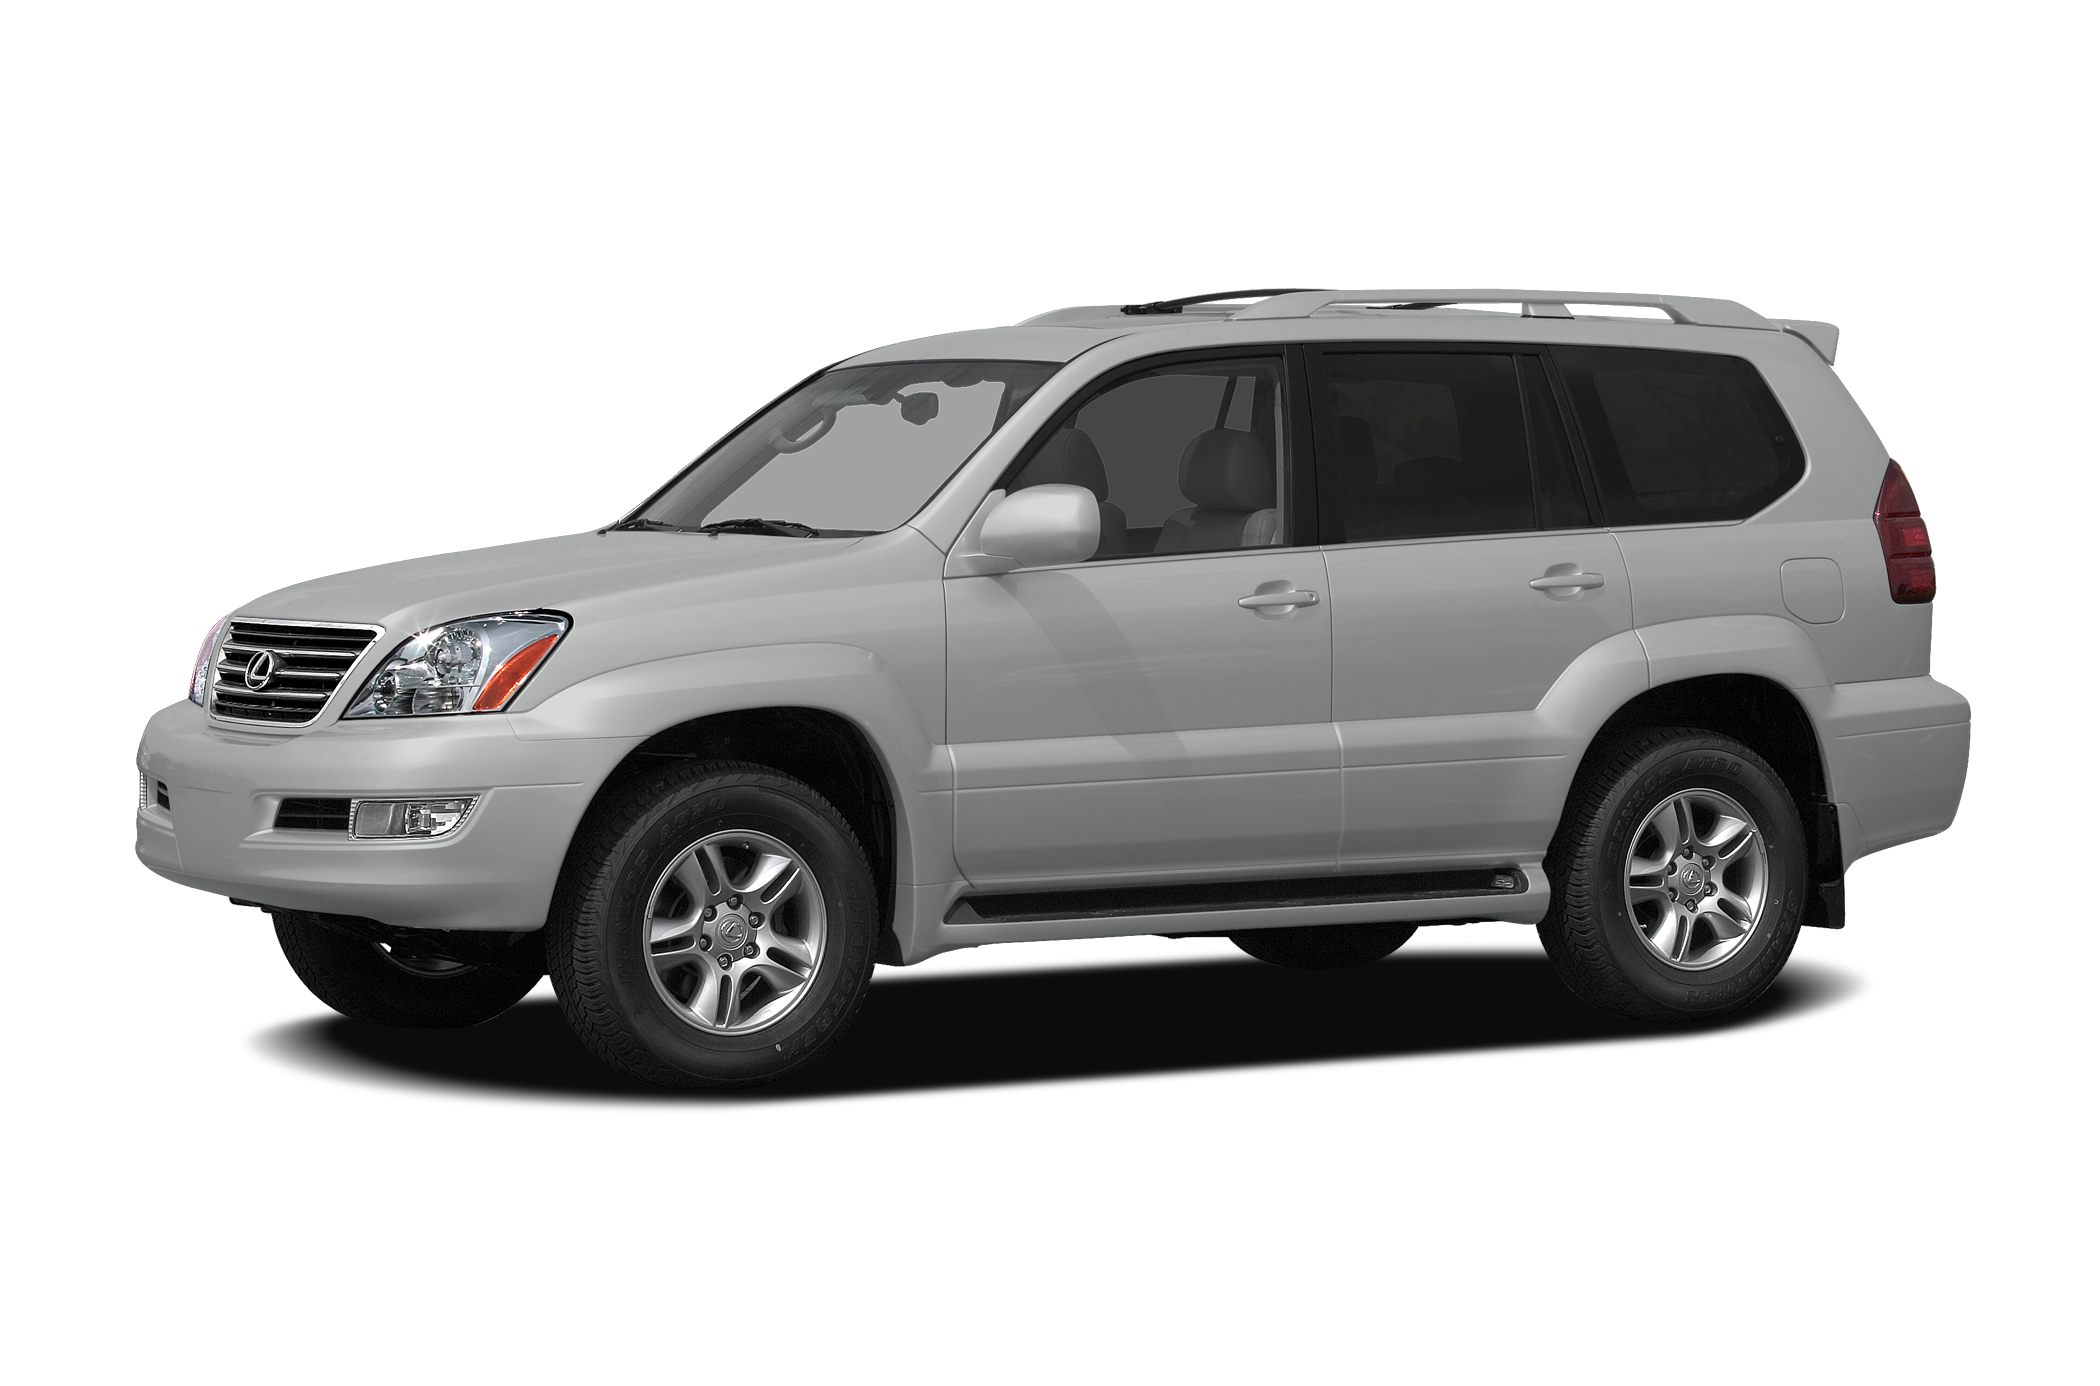 2007 Lexus GX 470 Base Win a score on this 2007 Lexus GX 470 while we have it Spacious yet easy t